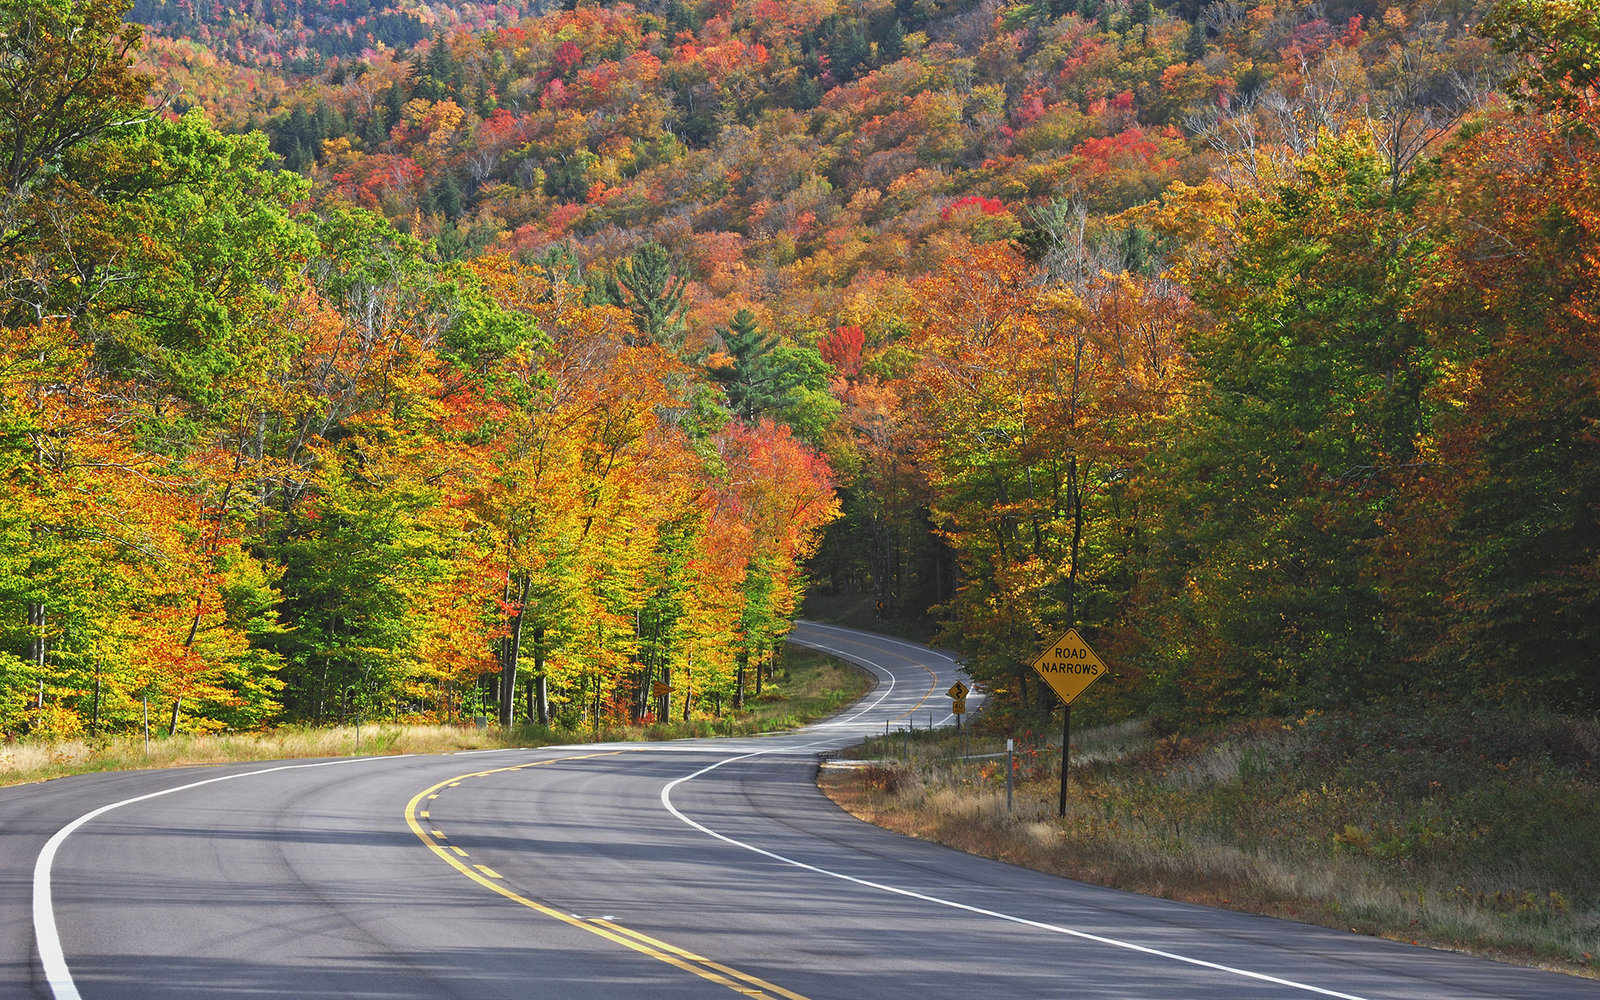 fall foliage in Kancamagus Highway, New Hampshire